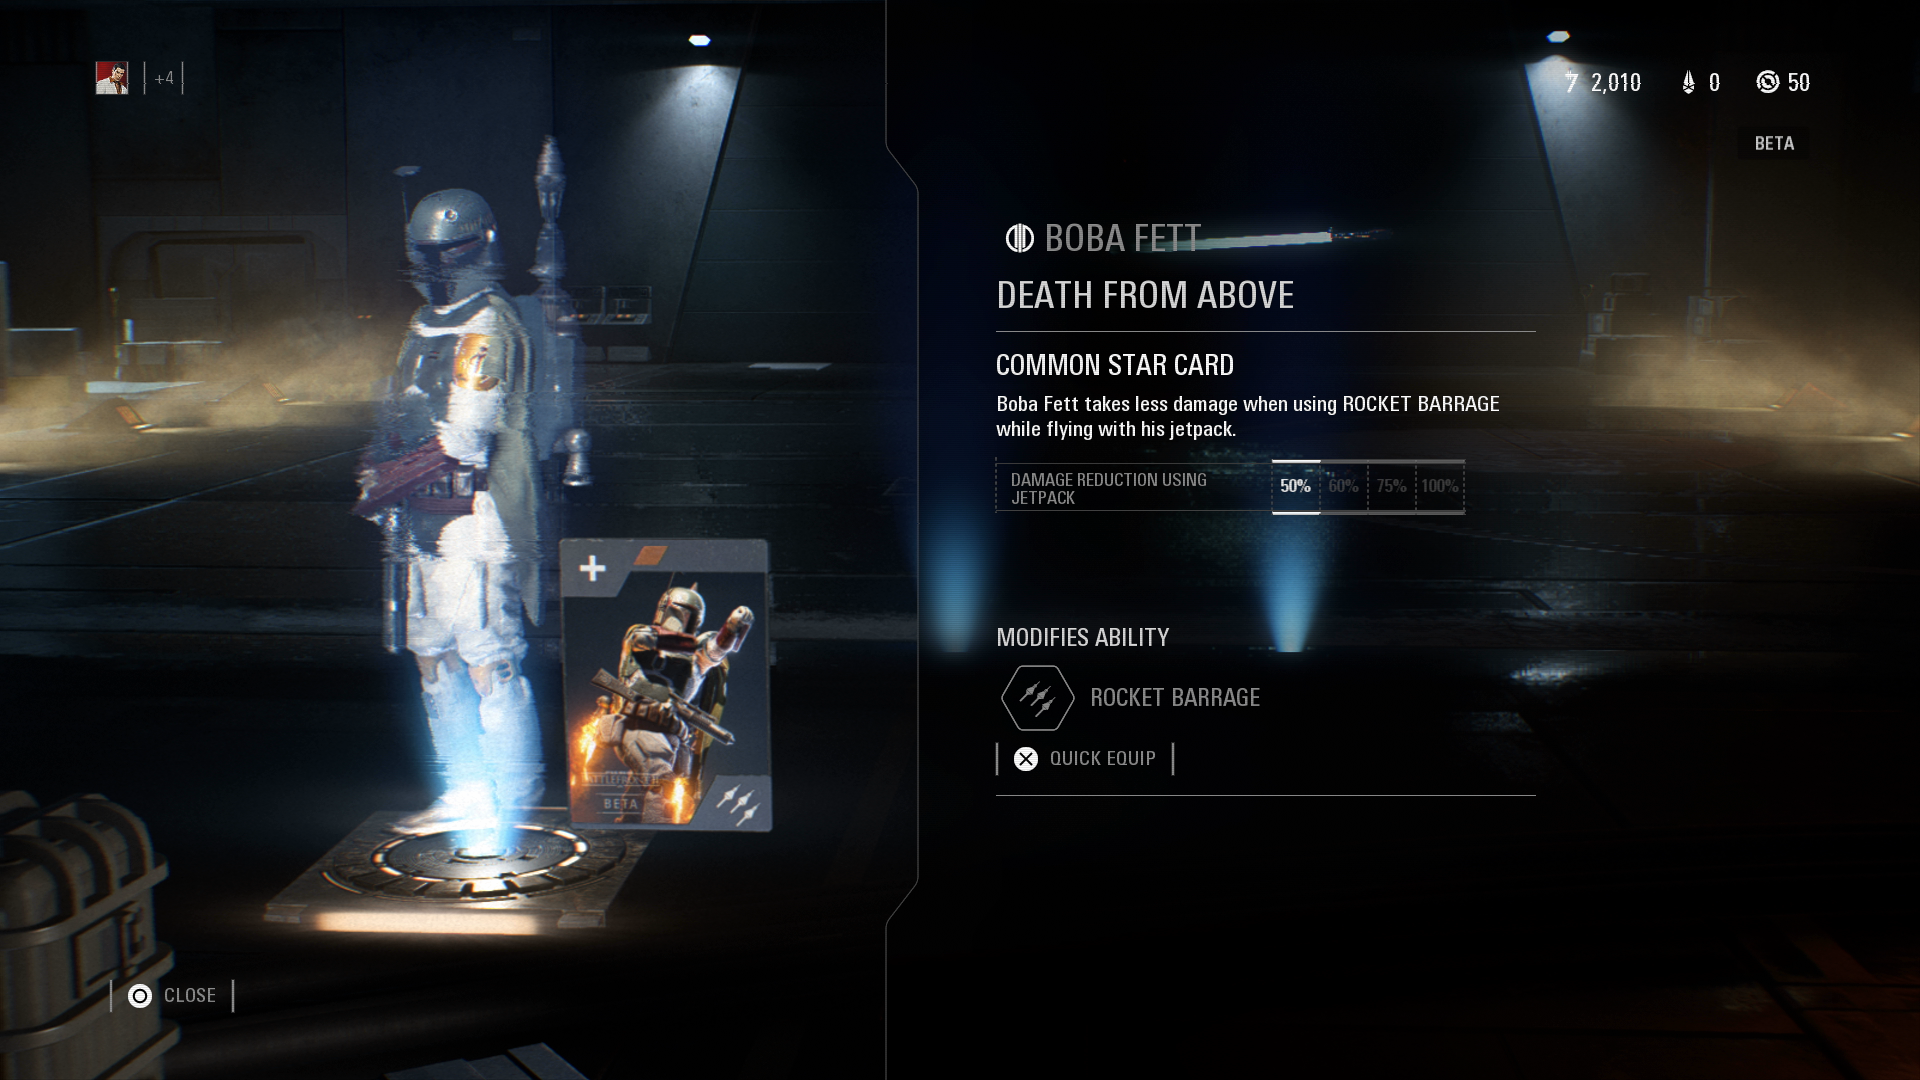 Star Wars Battlefront 2 Loot Boxes Guide - Daily